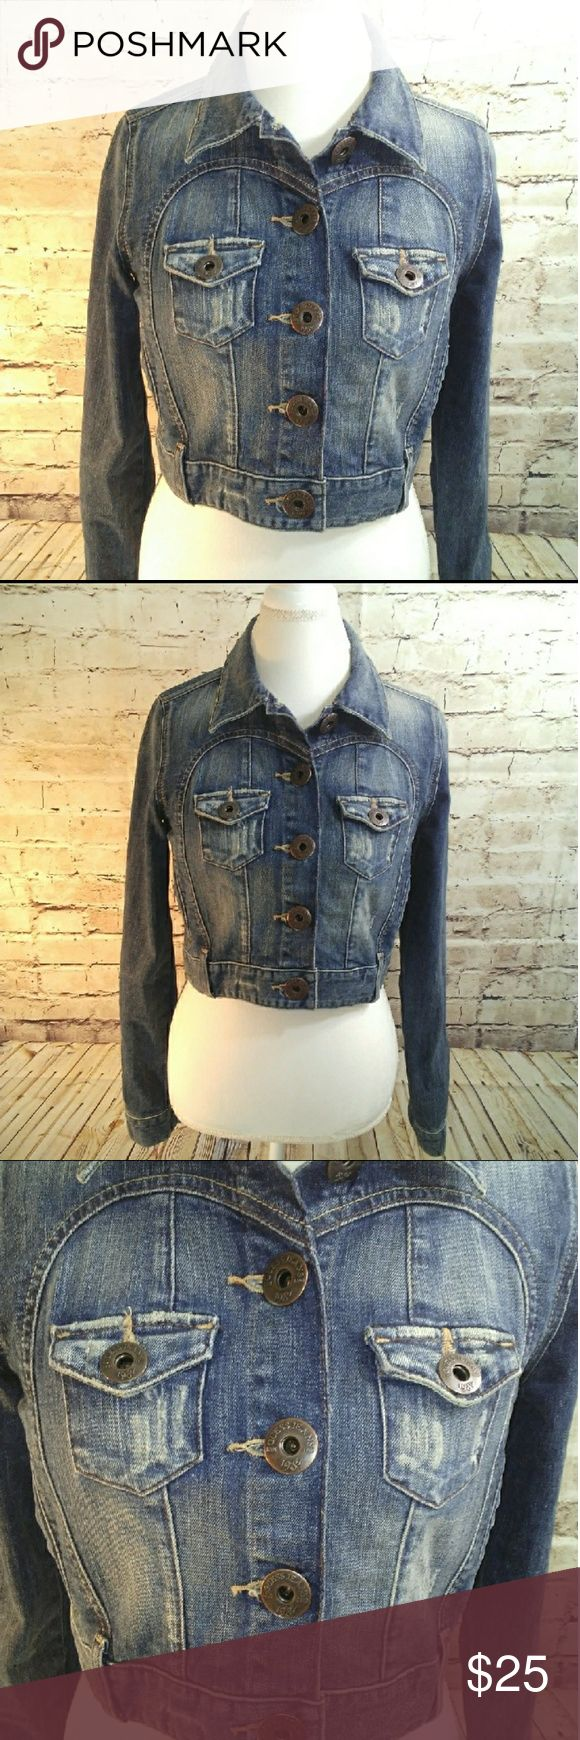 """[Guess]Denim Jean Jacket Distressed Cropped Like new condition. 18"""" Arm pit to arm pit 16"""" Length24 1/2 Sleeves.  *No rips, stains, tears or flaws- *All measurements are takin laying flat and are approximate. *Colors may vary from screen to screen Guess Jackets & Coats Jean Jackets"""